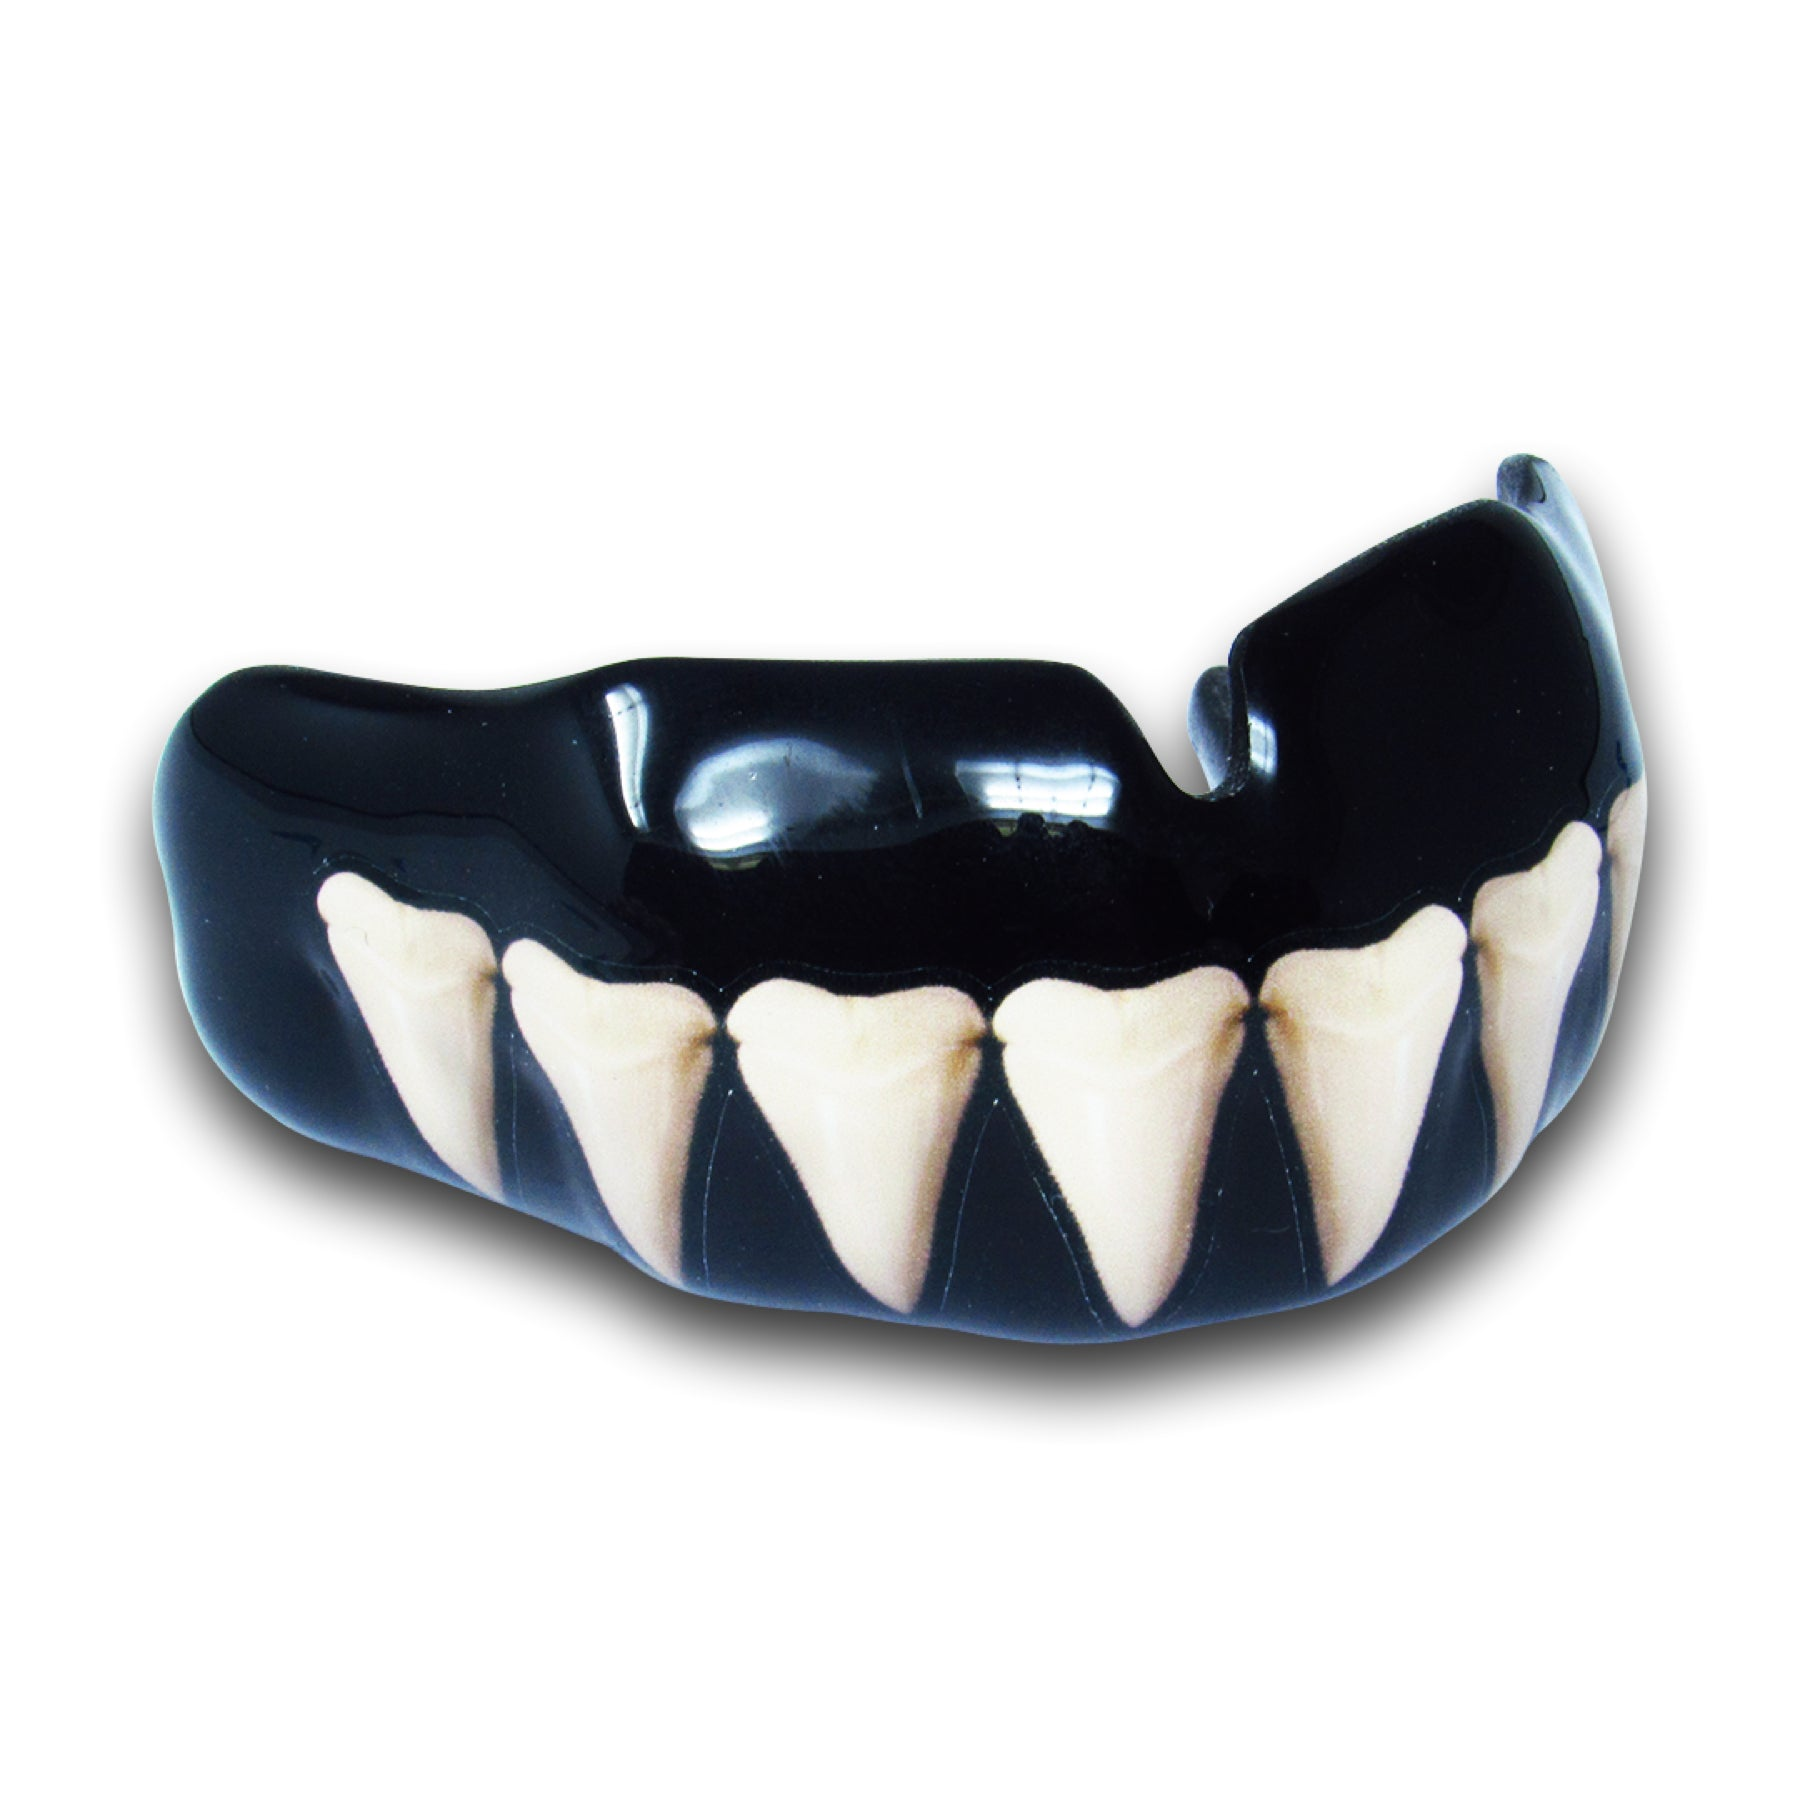 <span>Shark Fangs</span> Mouthguard | Mouthpiece Guy